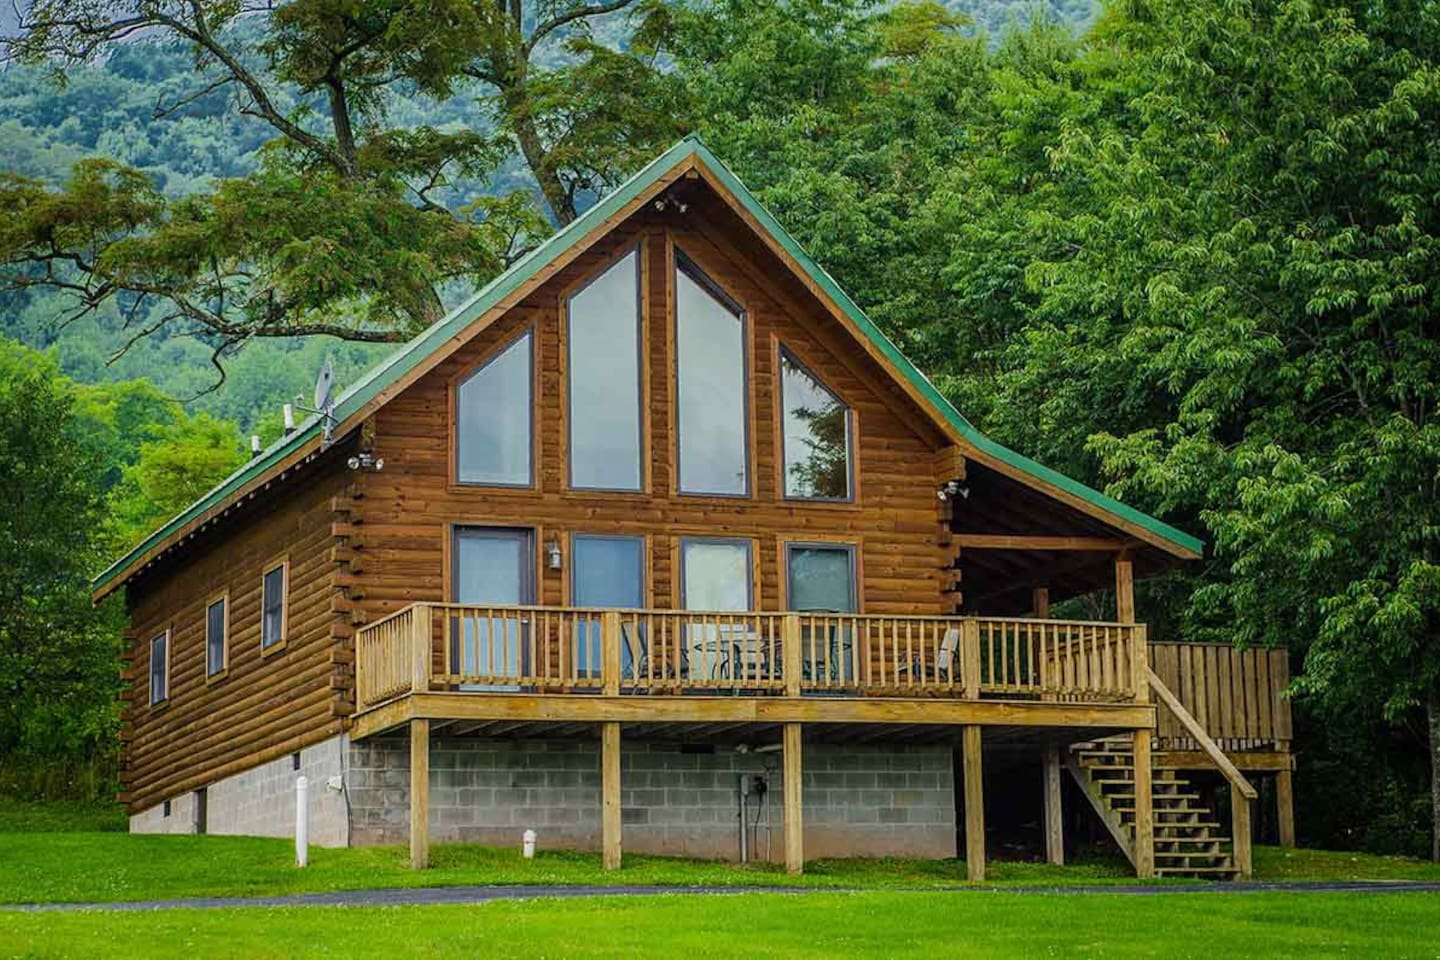 s property image home in secluded yards hiking hot with tub from the beach cabins bed conservation gorge luxury new river area deal white water ha creek fern wv